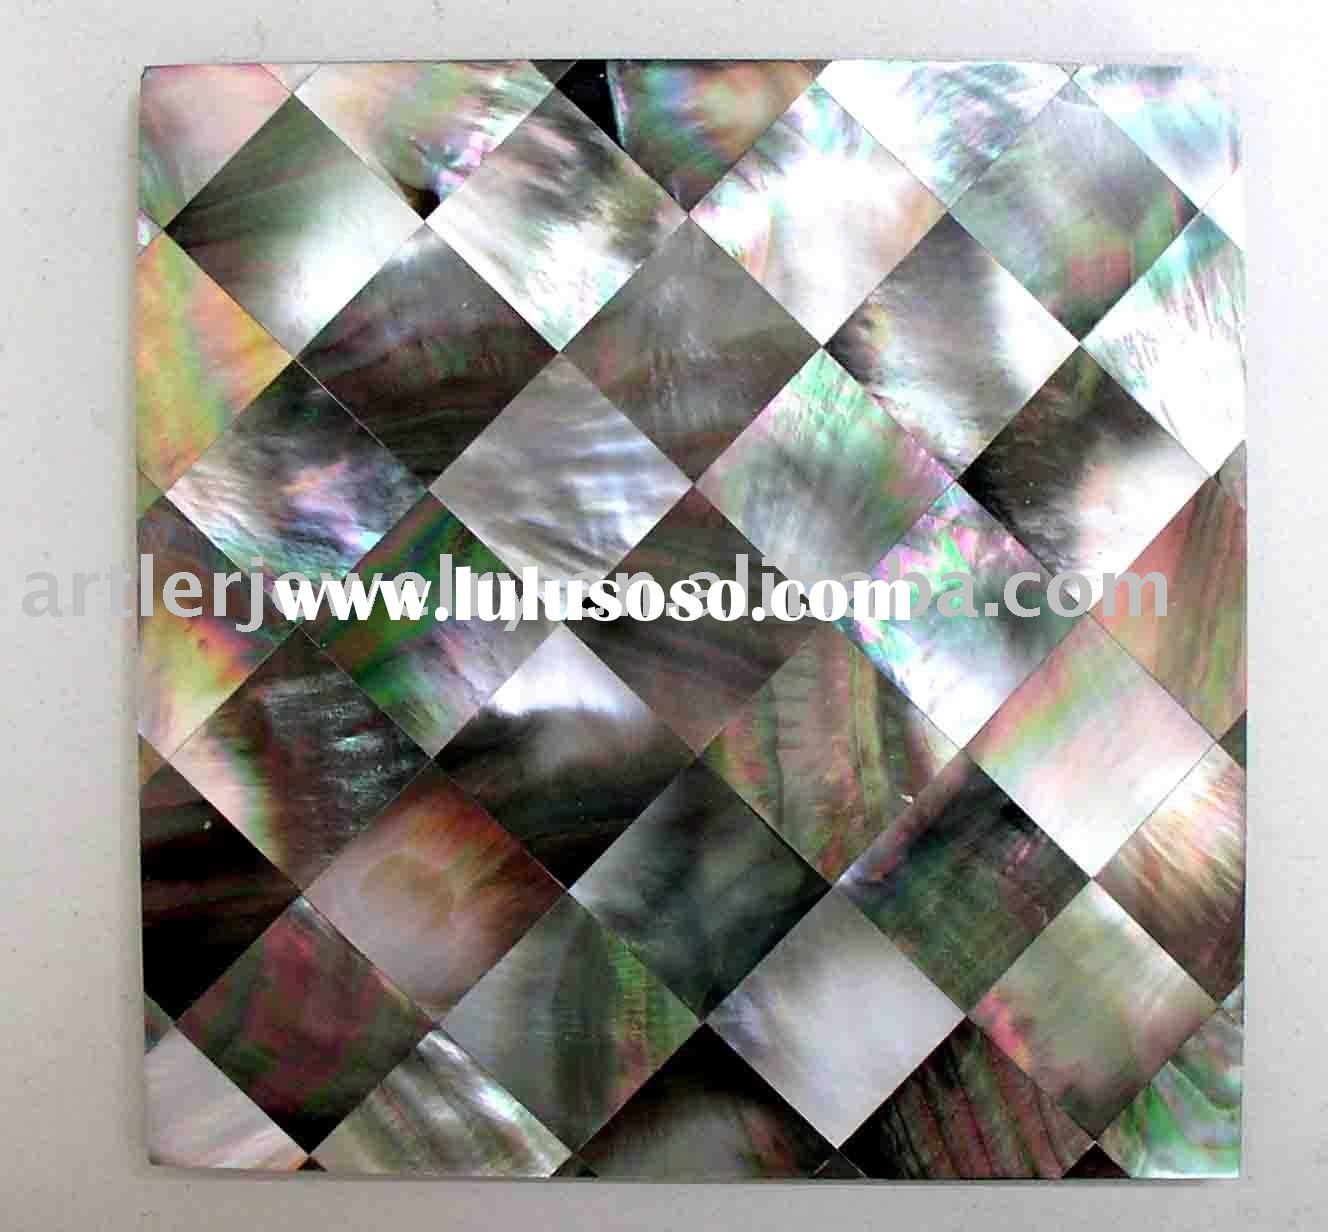 Mother of pearl tile and mosaic